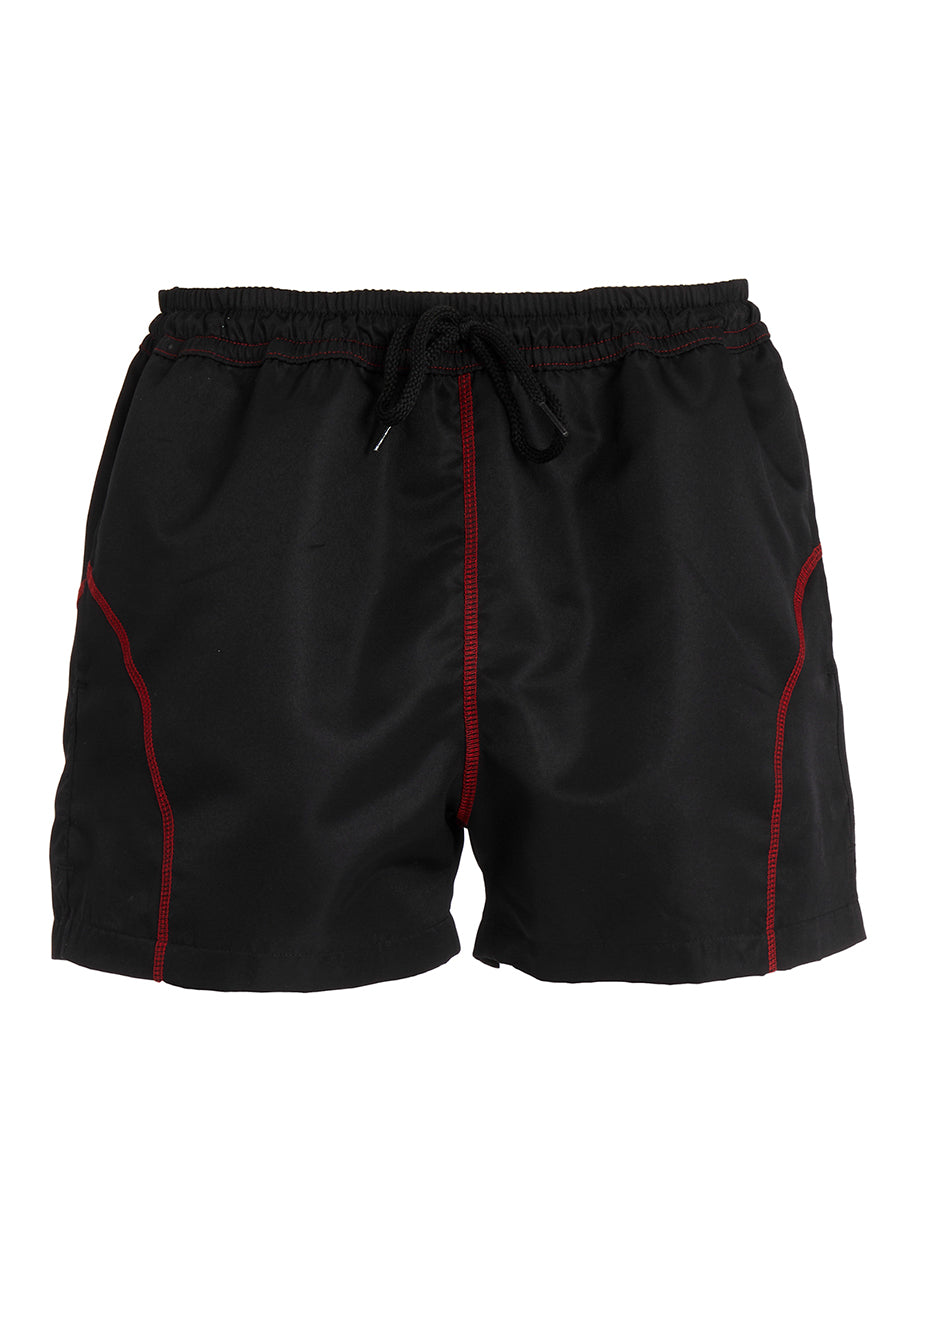 Tag Swim Shorts